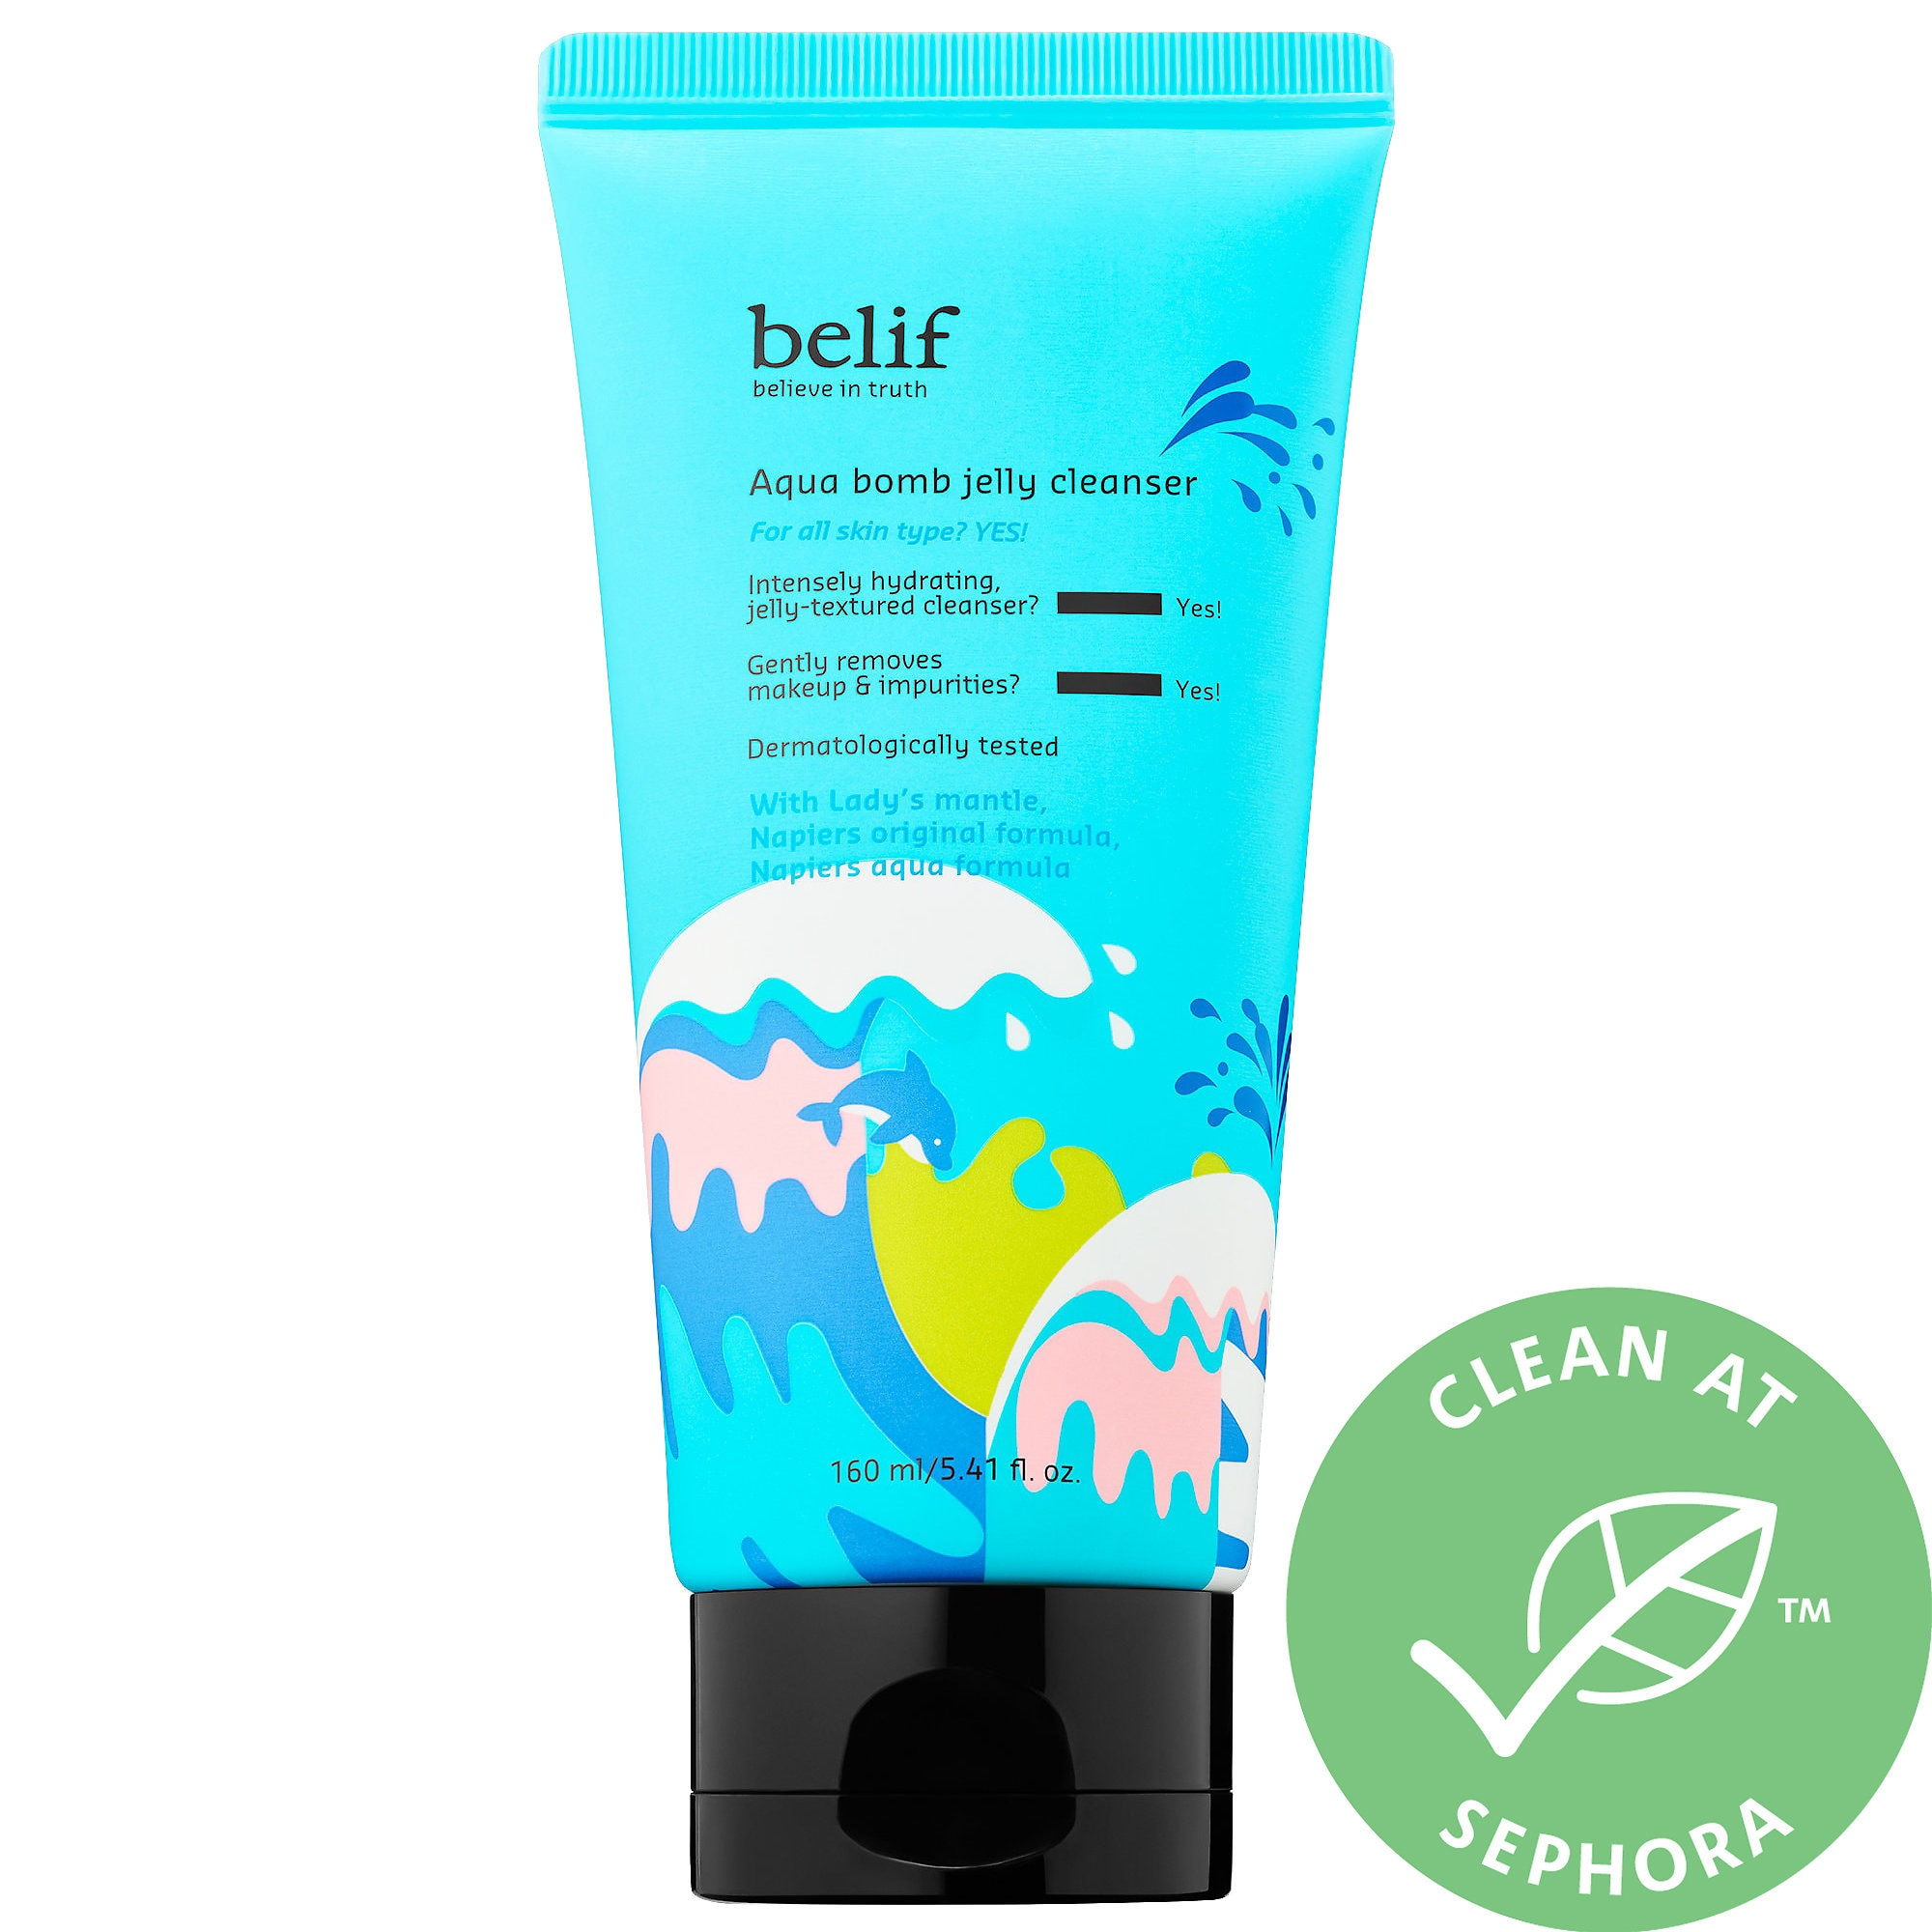 Belif - Aqua Bomb Jelly Cleanser